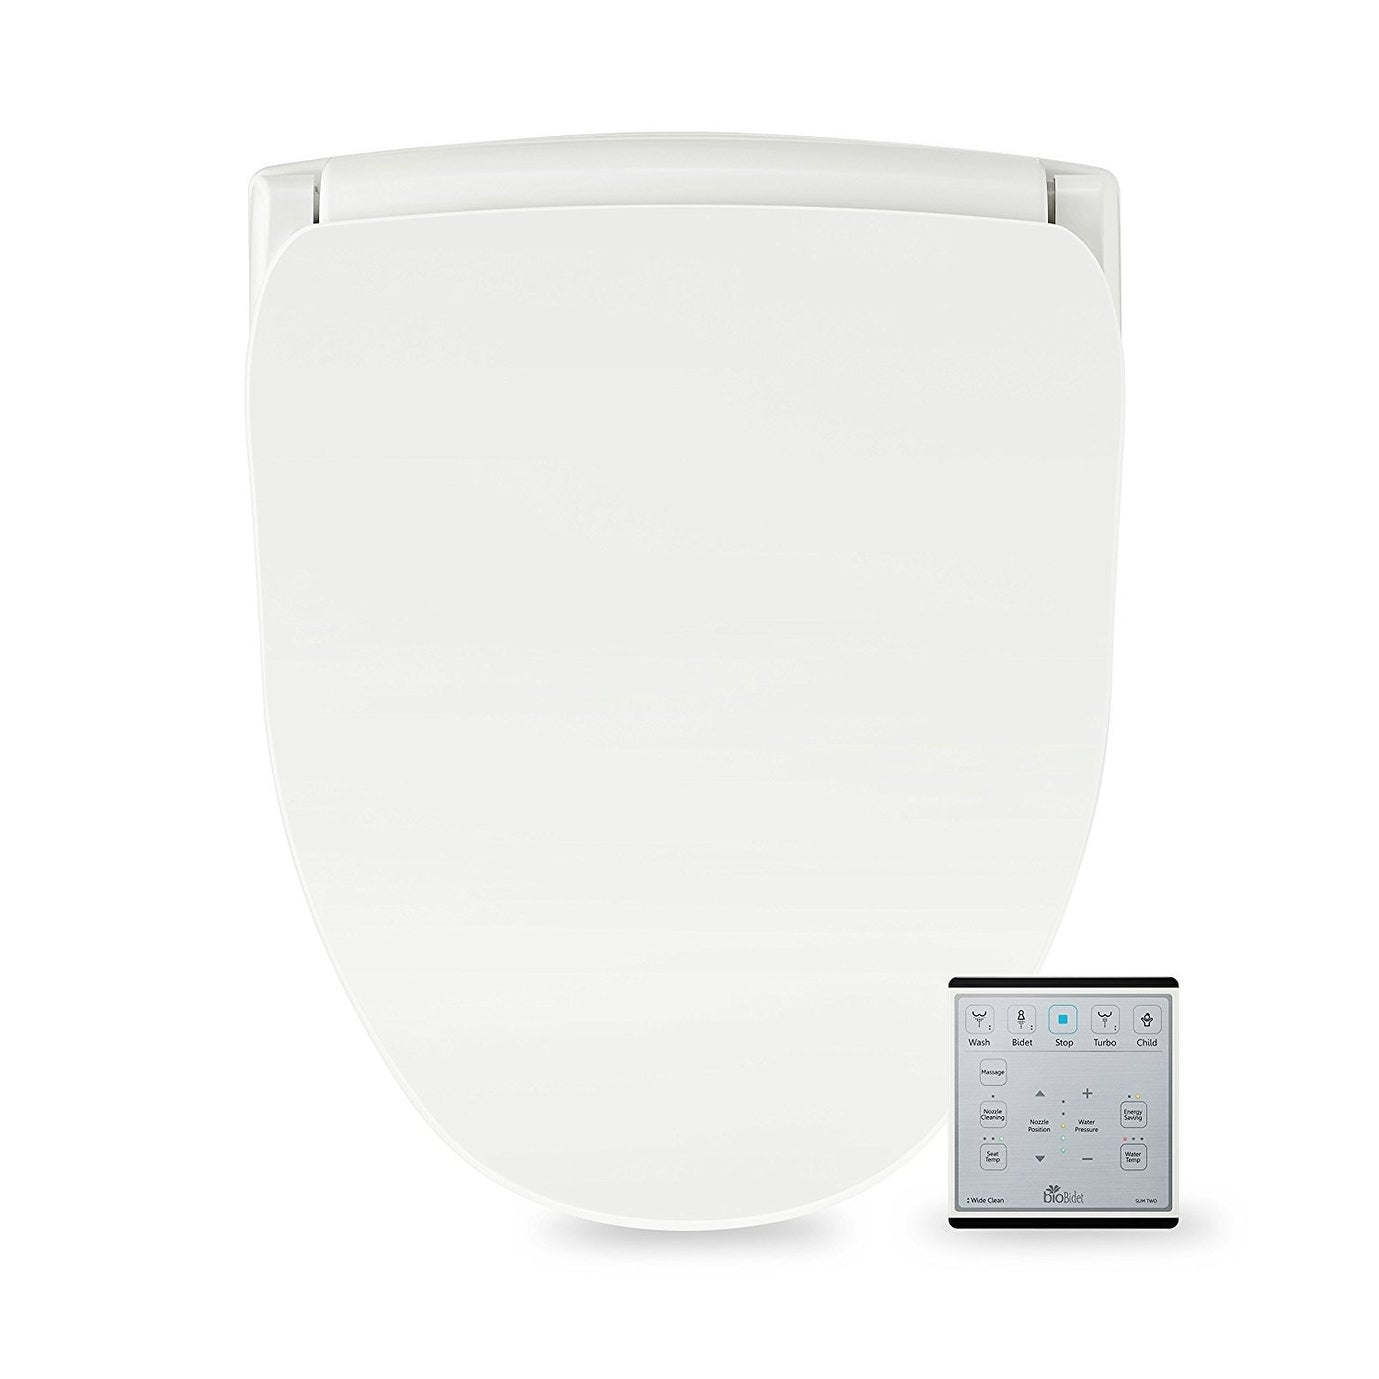 Cool Slim Two Smart Toilet Seat Bidet And Wireless Remote Control Alphanode Cool Chair Designs And Ideas Alphanodeonline